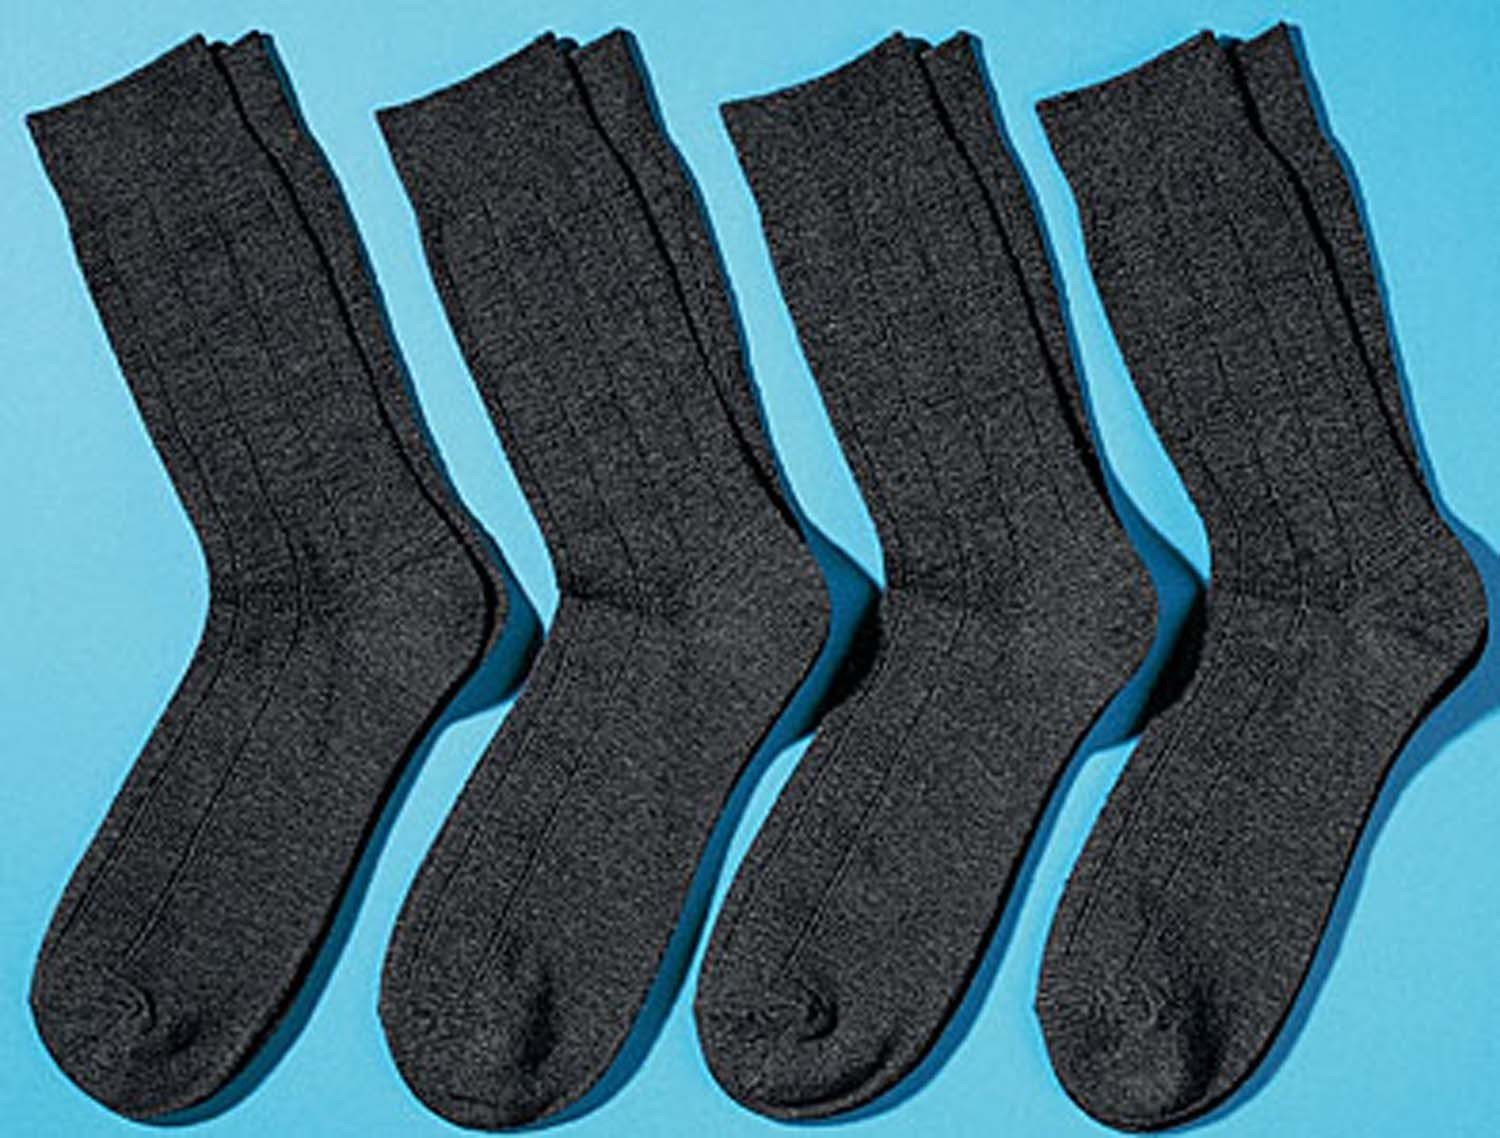 H-Business-Socken 4er-Set,anth 3942 013